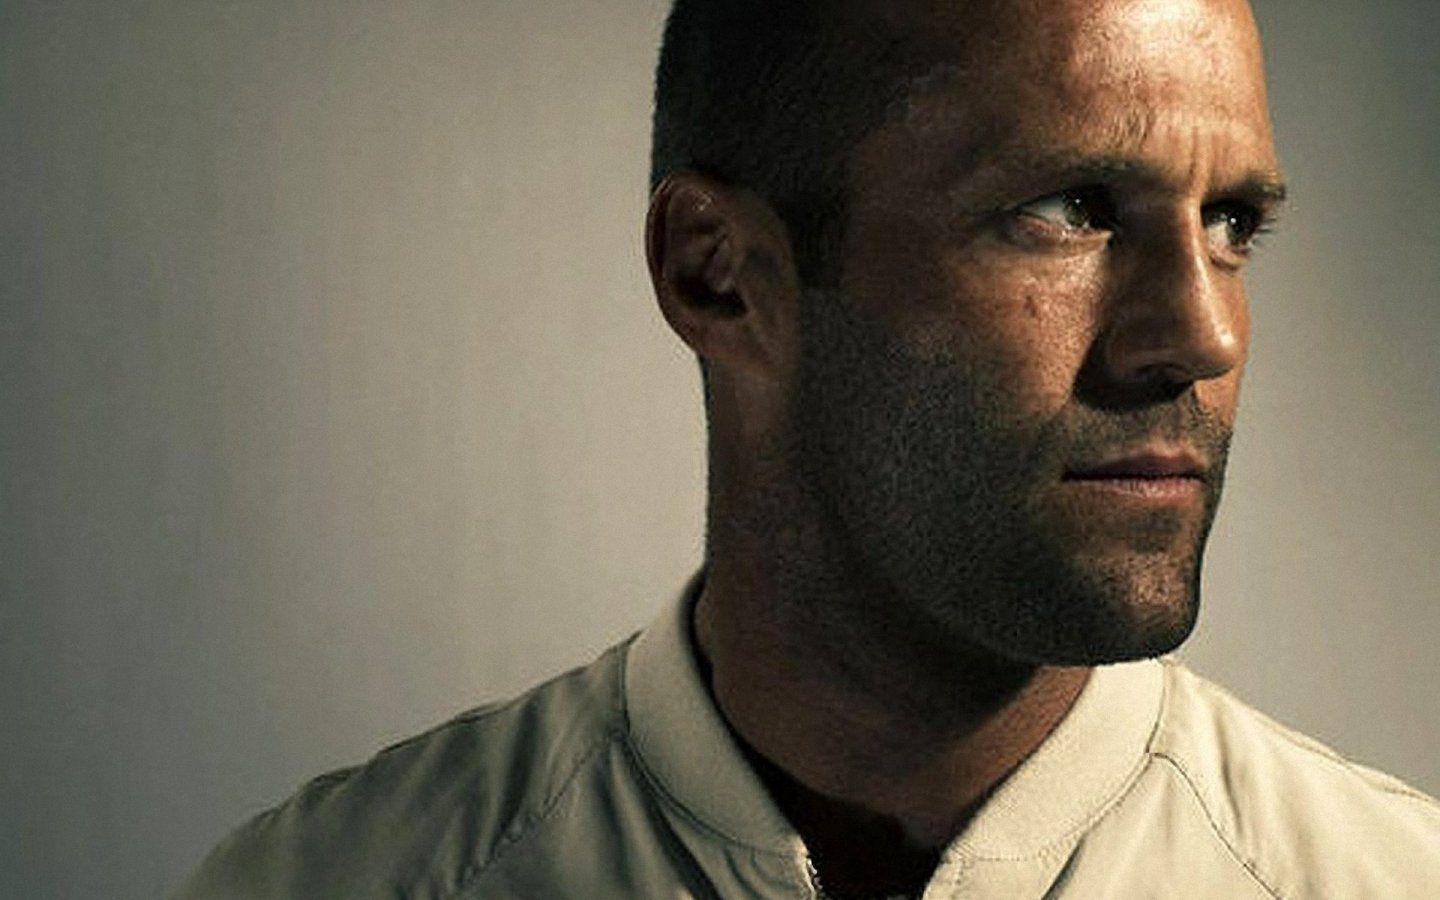 Jason Statham Photo Wallpaper For Desktop - Bioskop24.